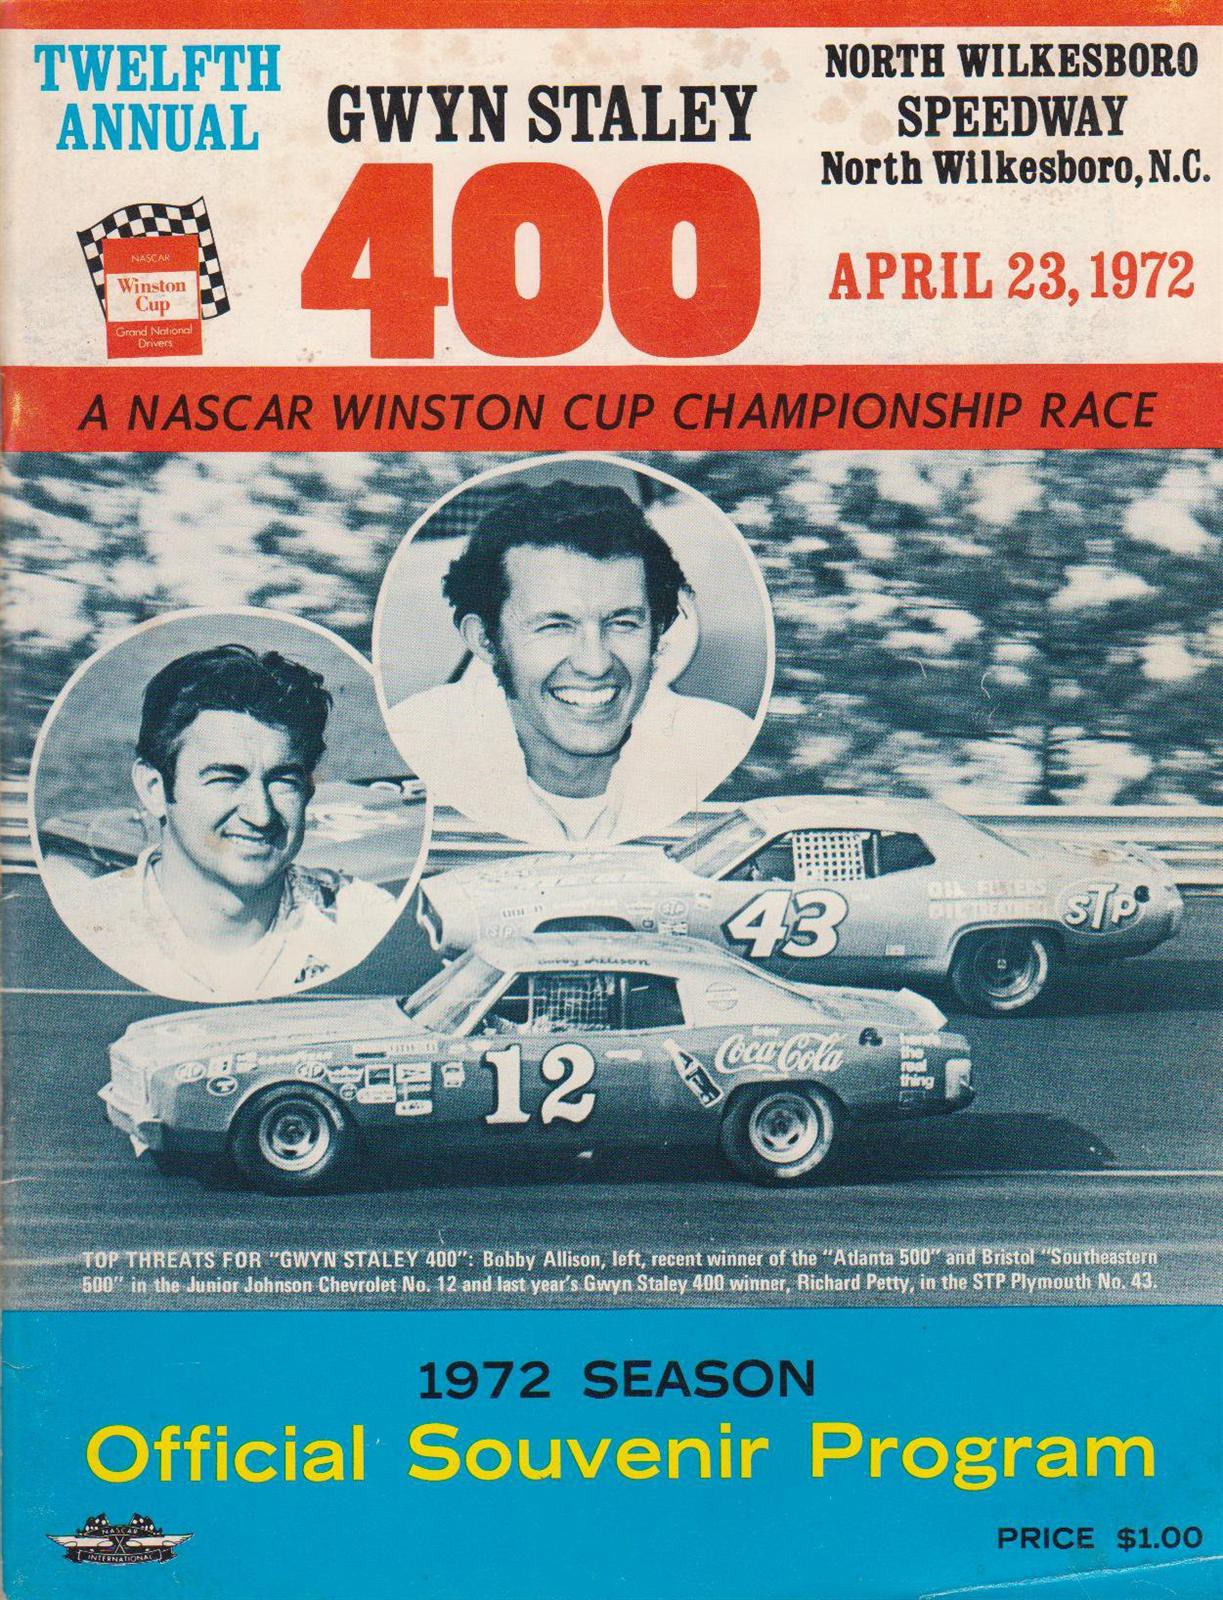 1972 north Wilkesboro program